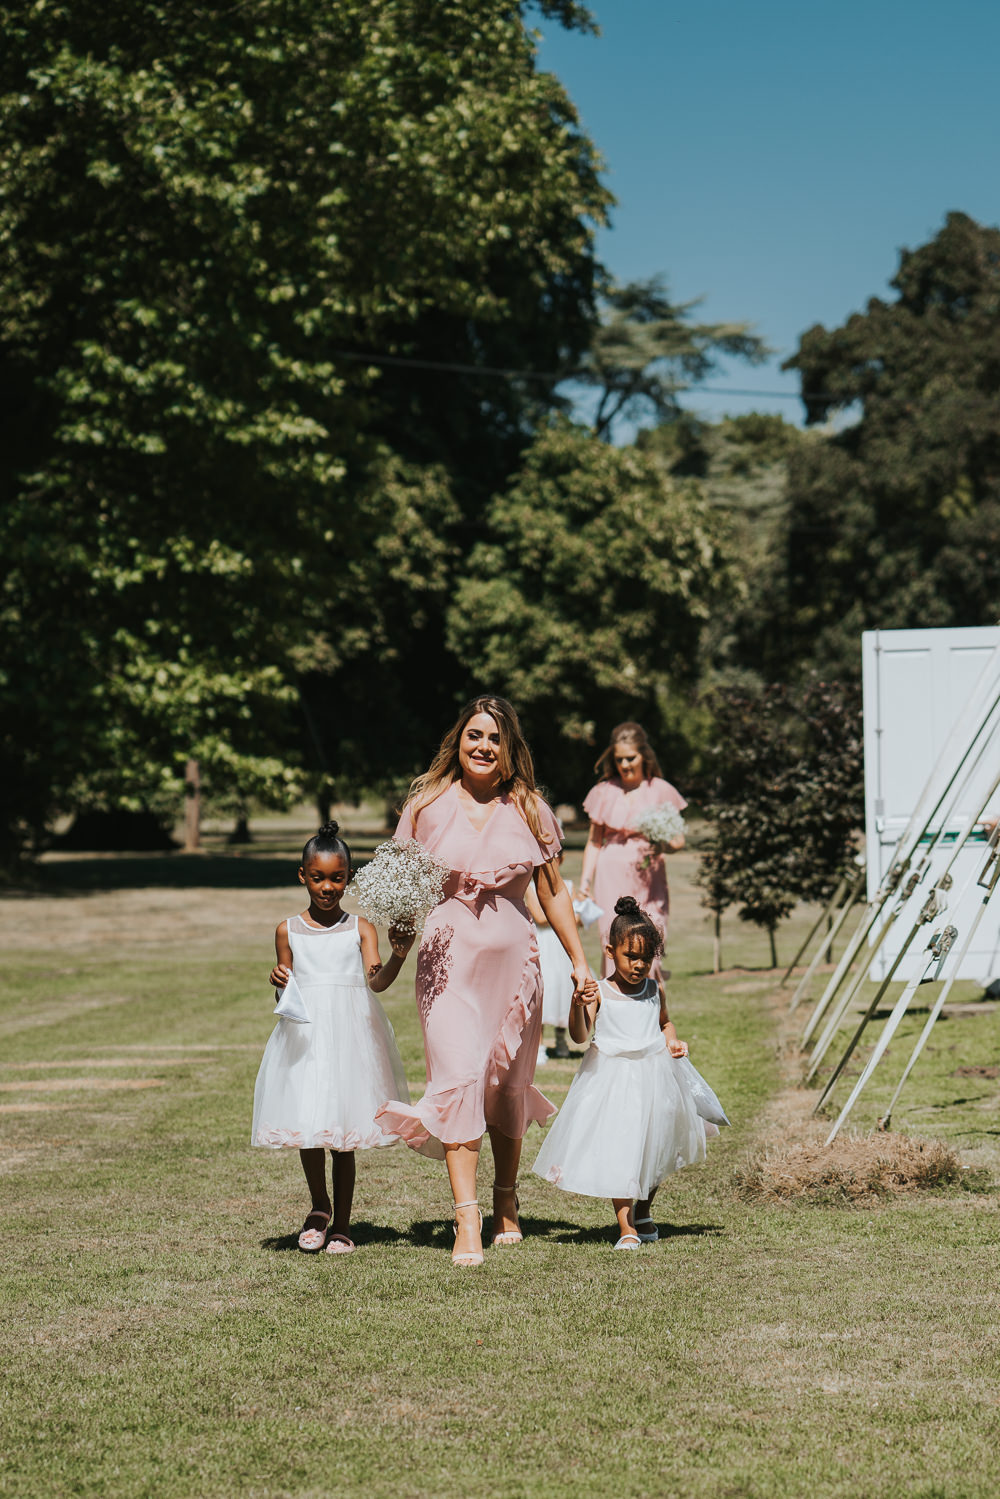 Outdoor Natural Relaxed Laid Back Summer Gypsophila Bouquets Blush Pink Bridesmaids Flower Girls | Prested Hall Wedding Grace Elizabeth Photography